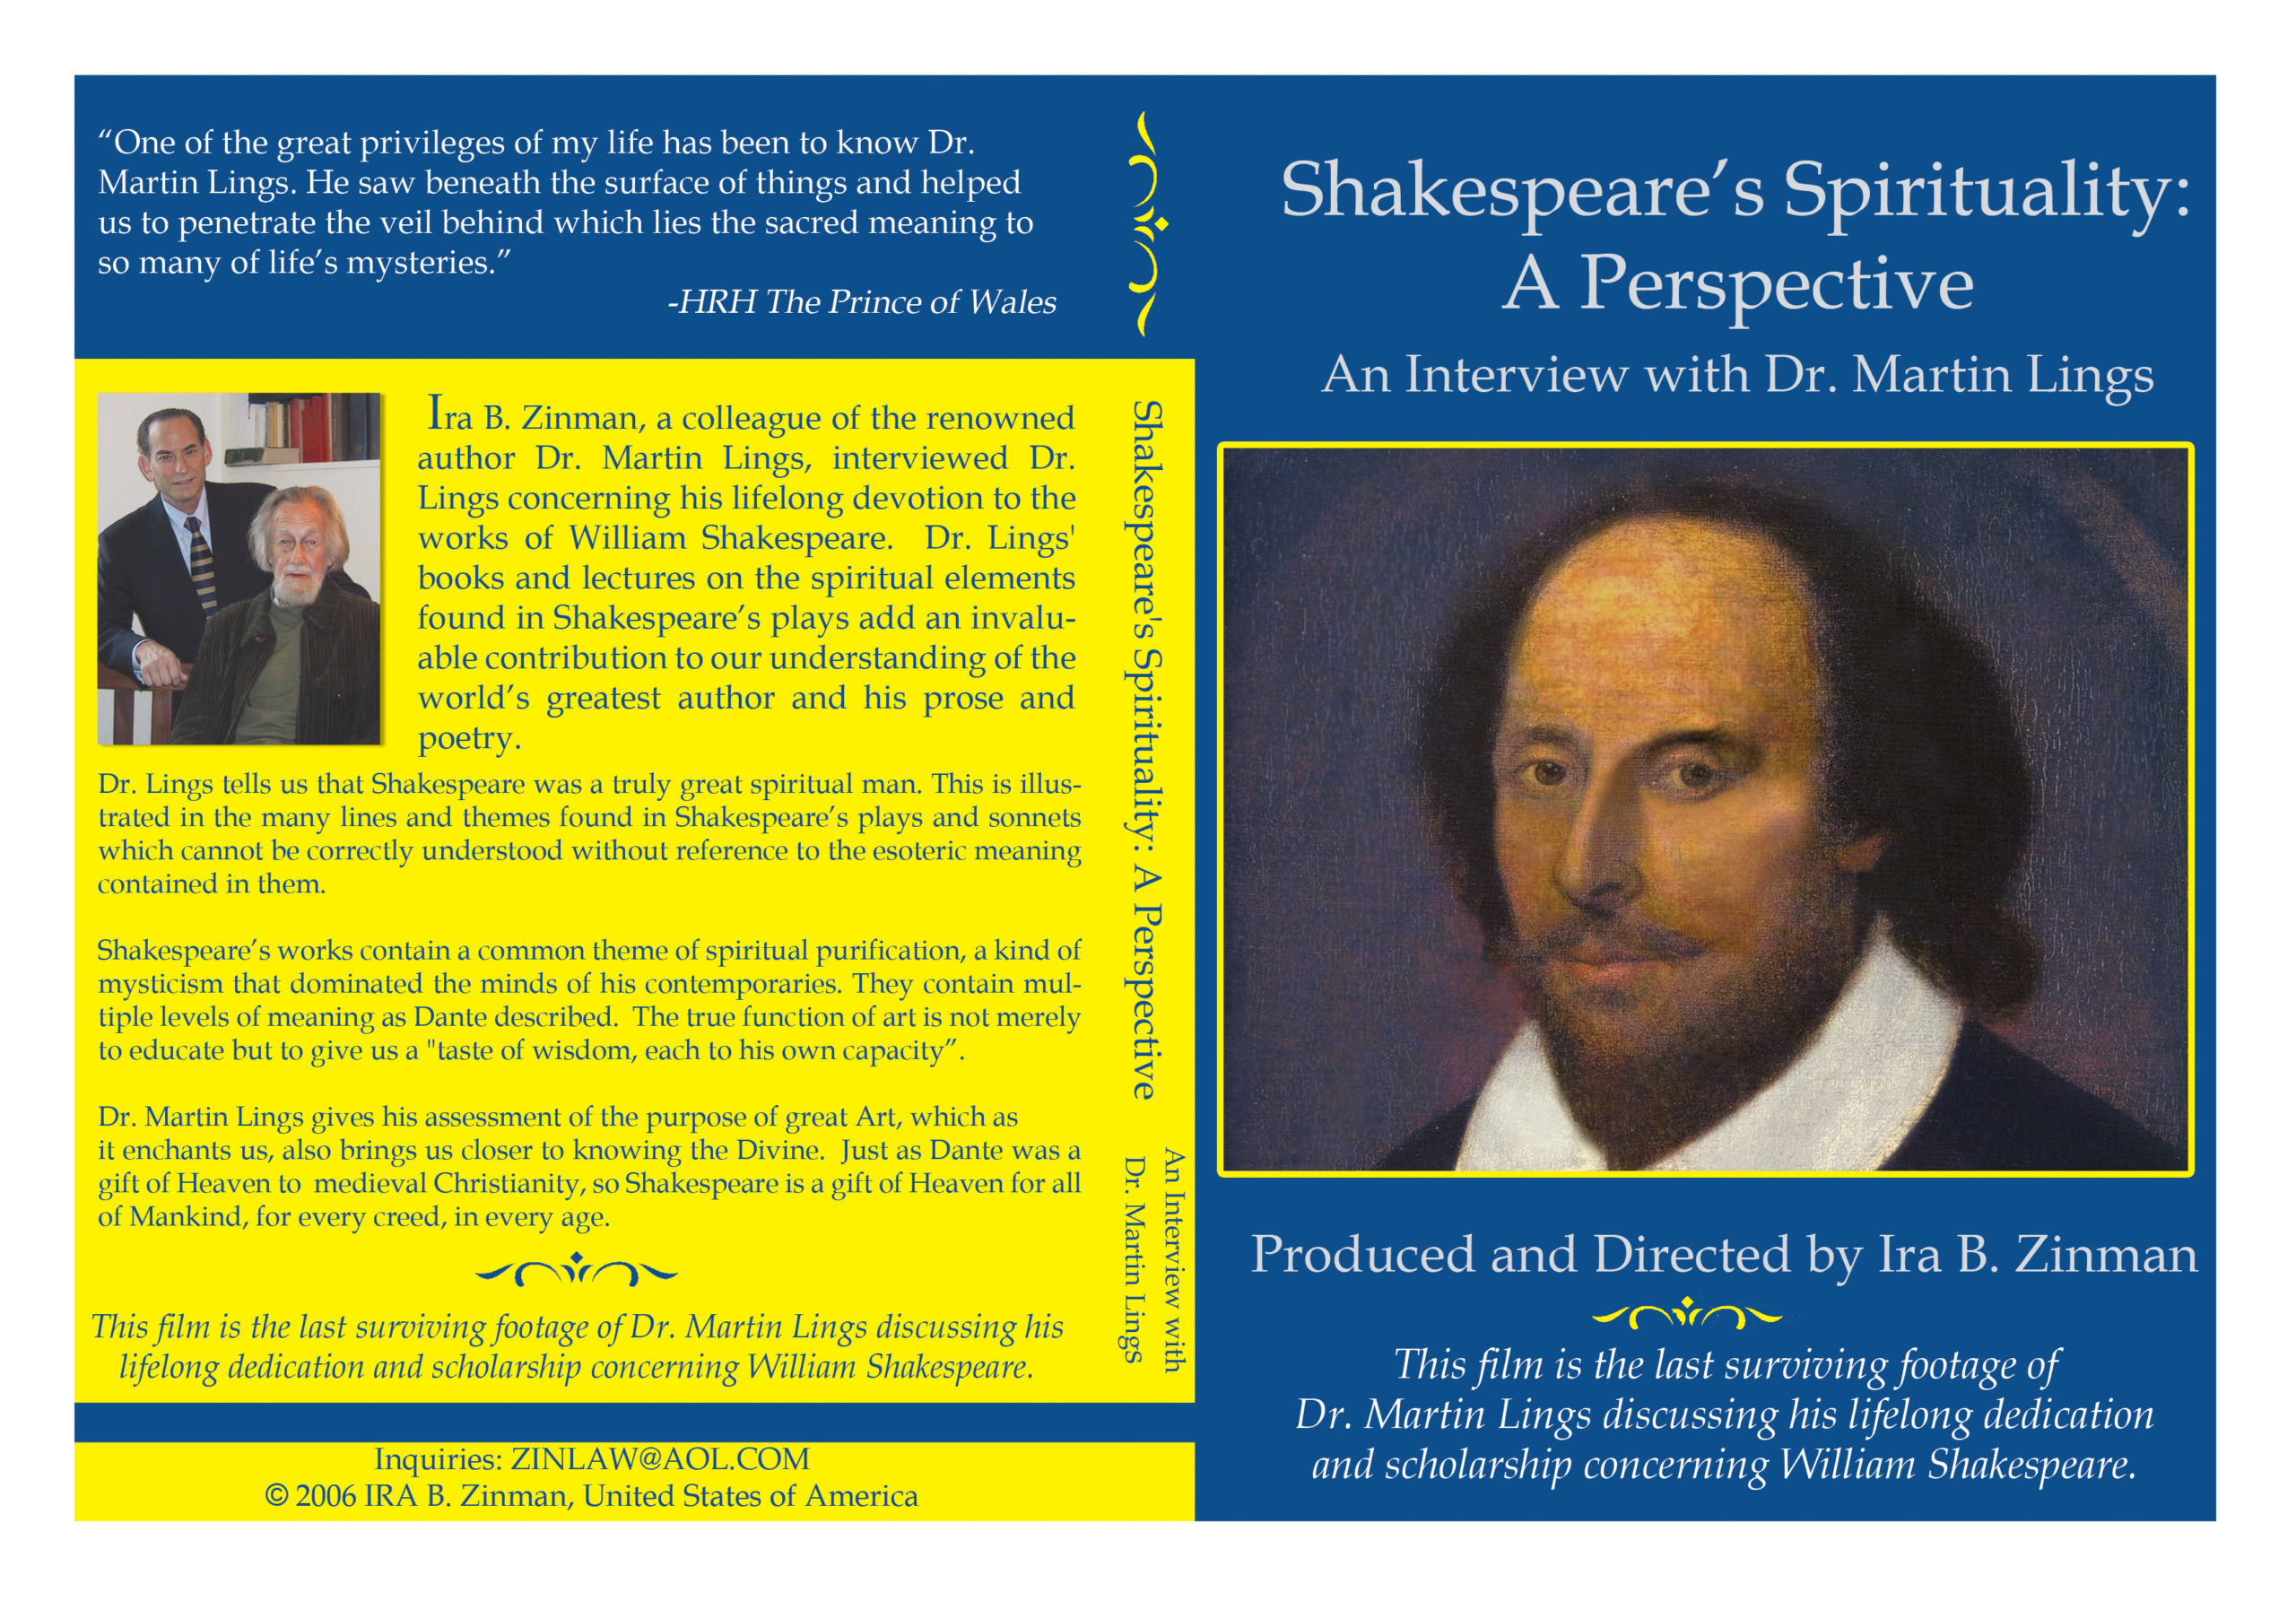 Shakespeare's Spirituality: A Perspective: An Interview With Dr. Martin Lings